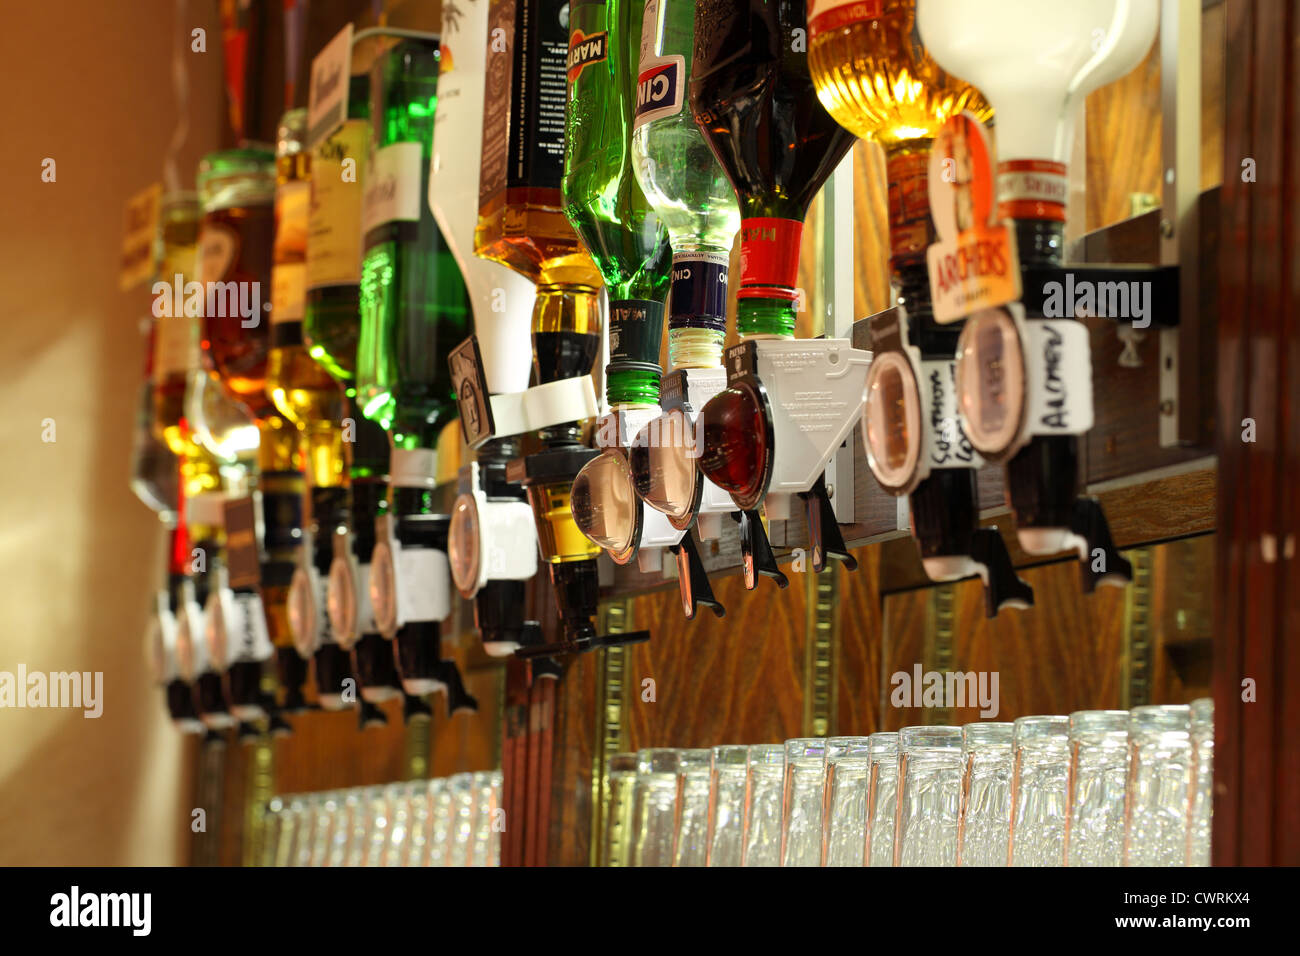 Bottles of spirits with optics on display at a British bar - Stock Image